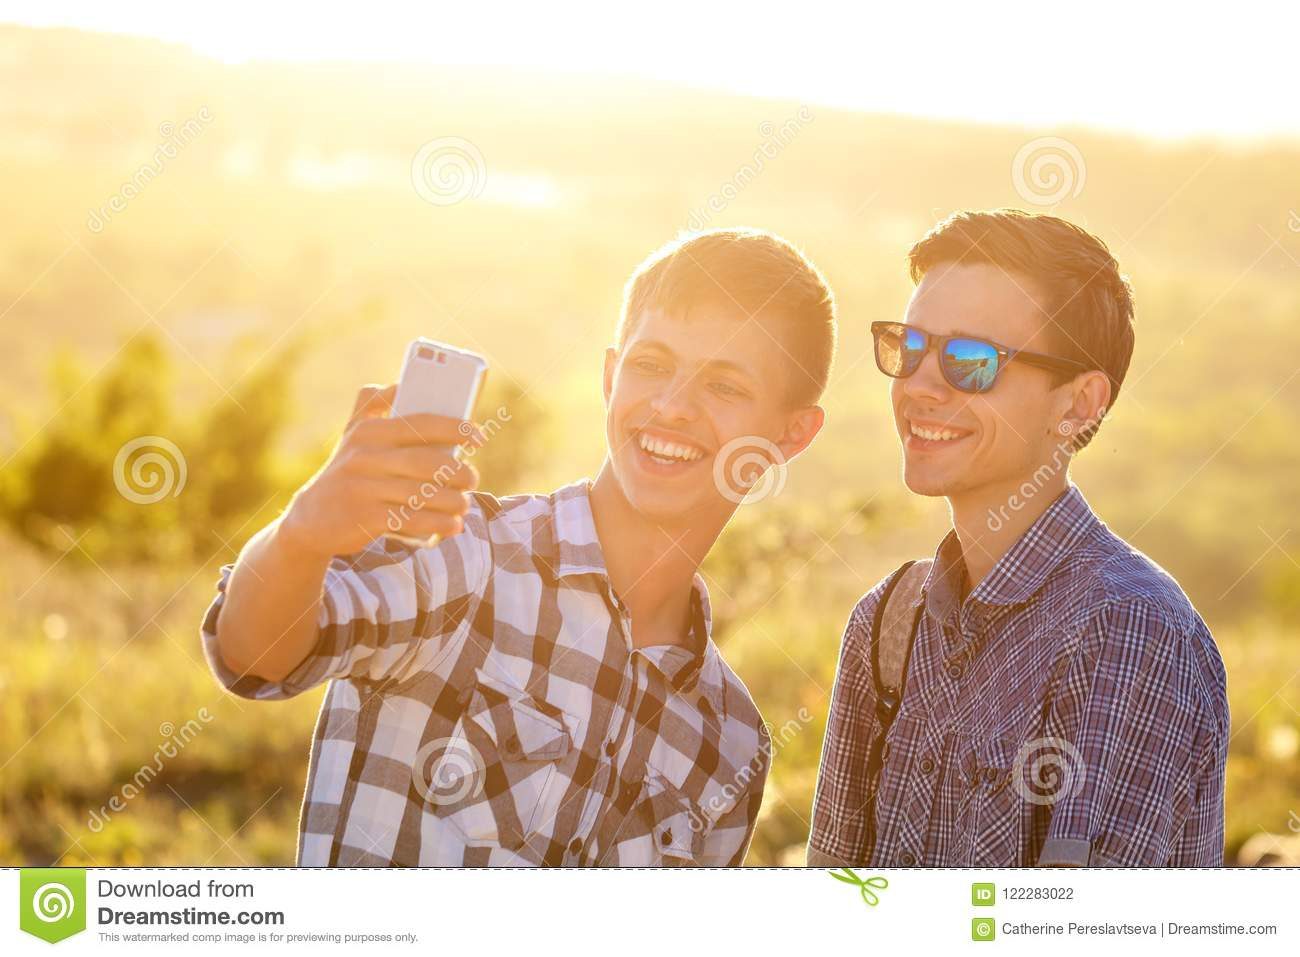 Two cute guys take selfies happy friends are photographed on the phone